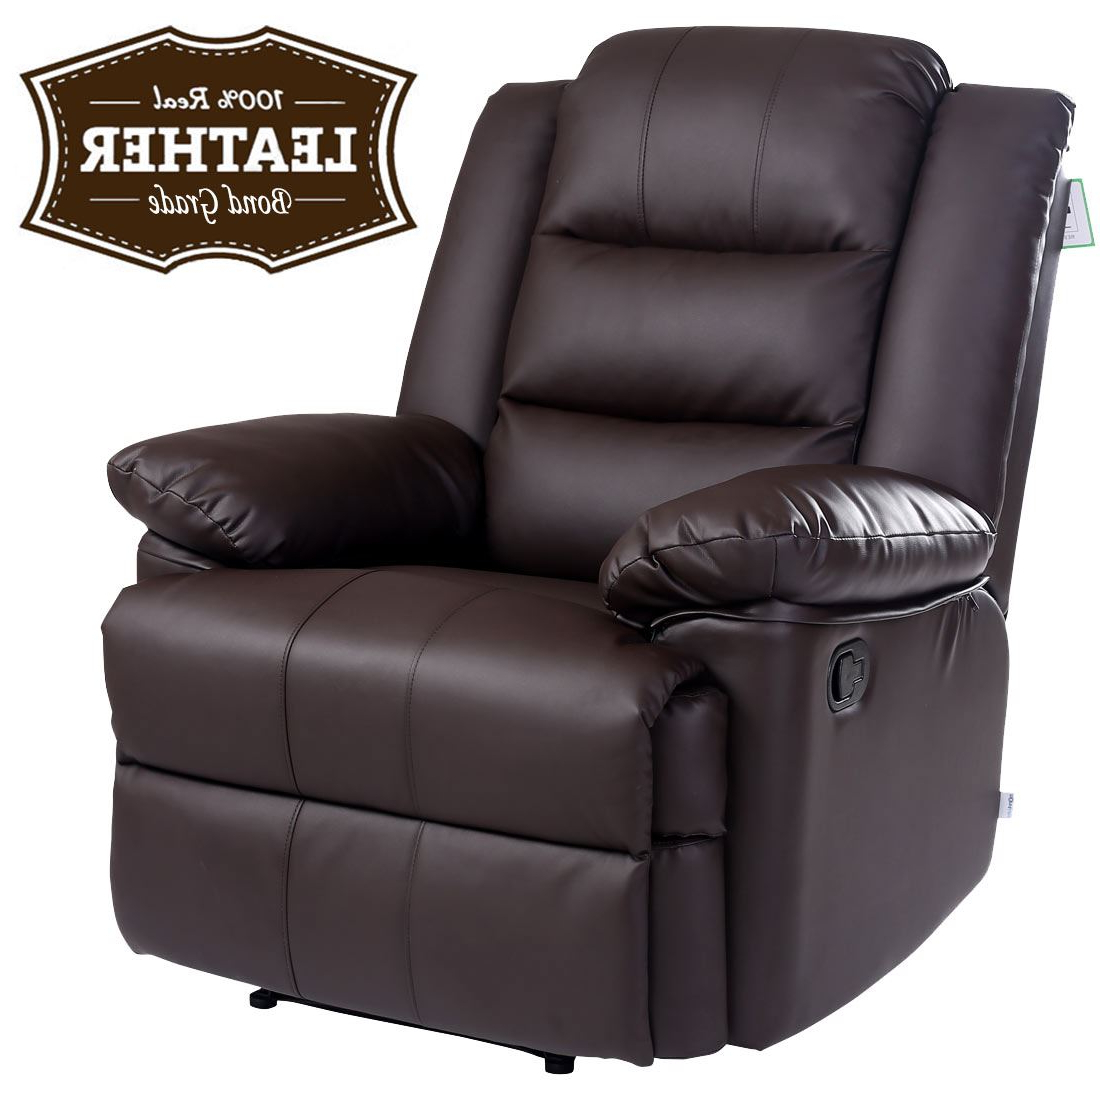 Sofa Chairs Pertaining To Widely Used Loxley Brown Leather Recliner Armchair Sofa Home Lounge Chair (Gallery 1 of 20)